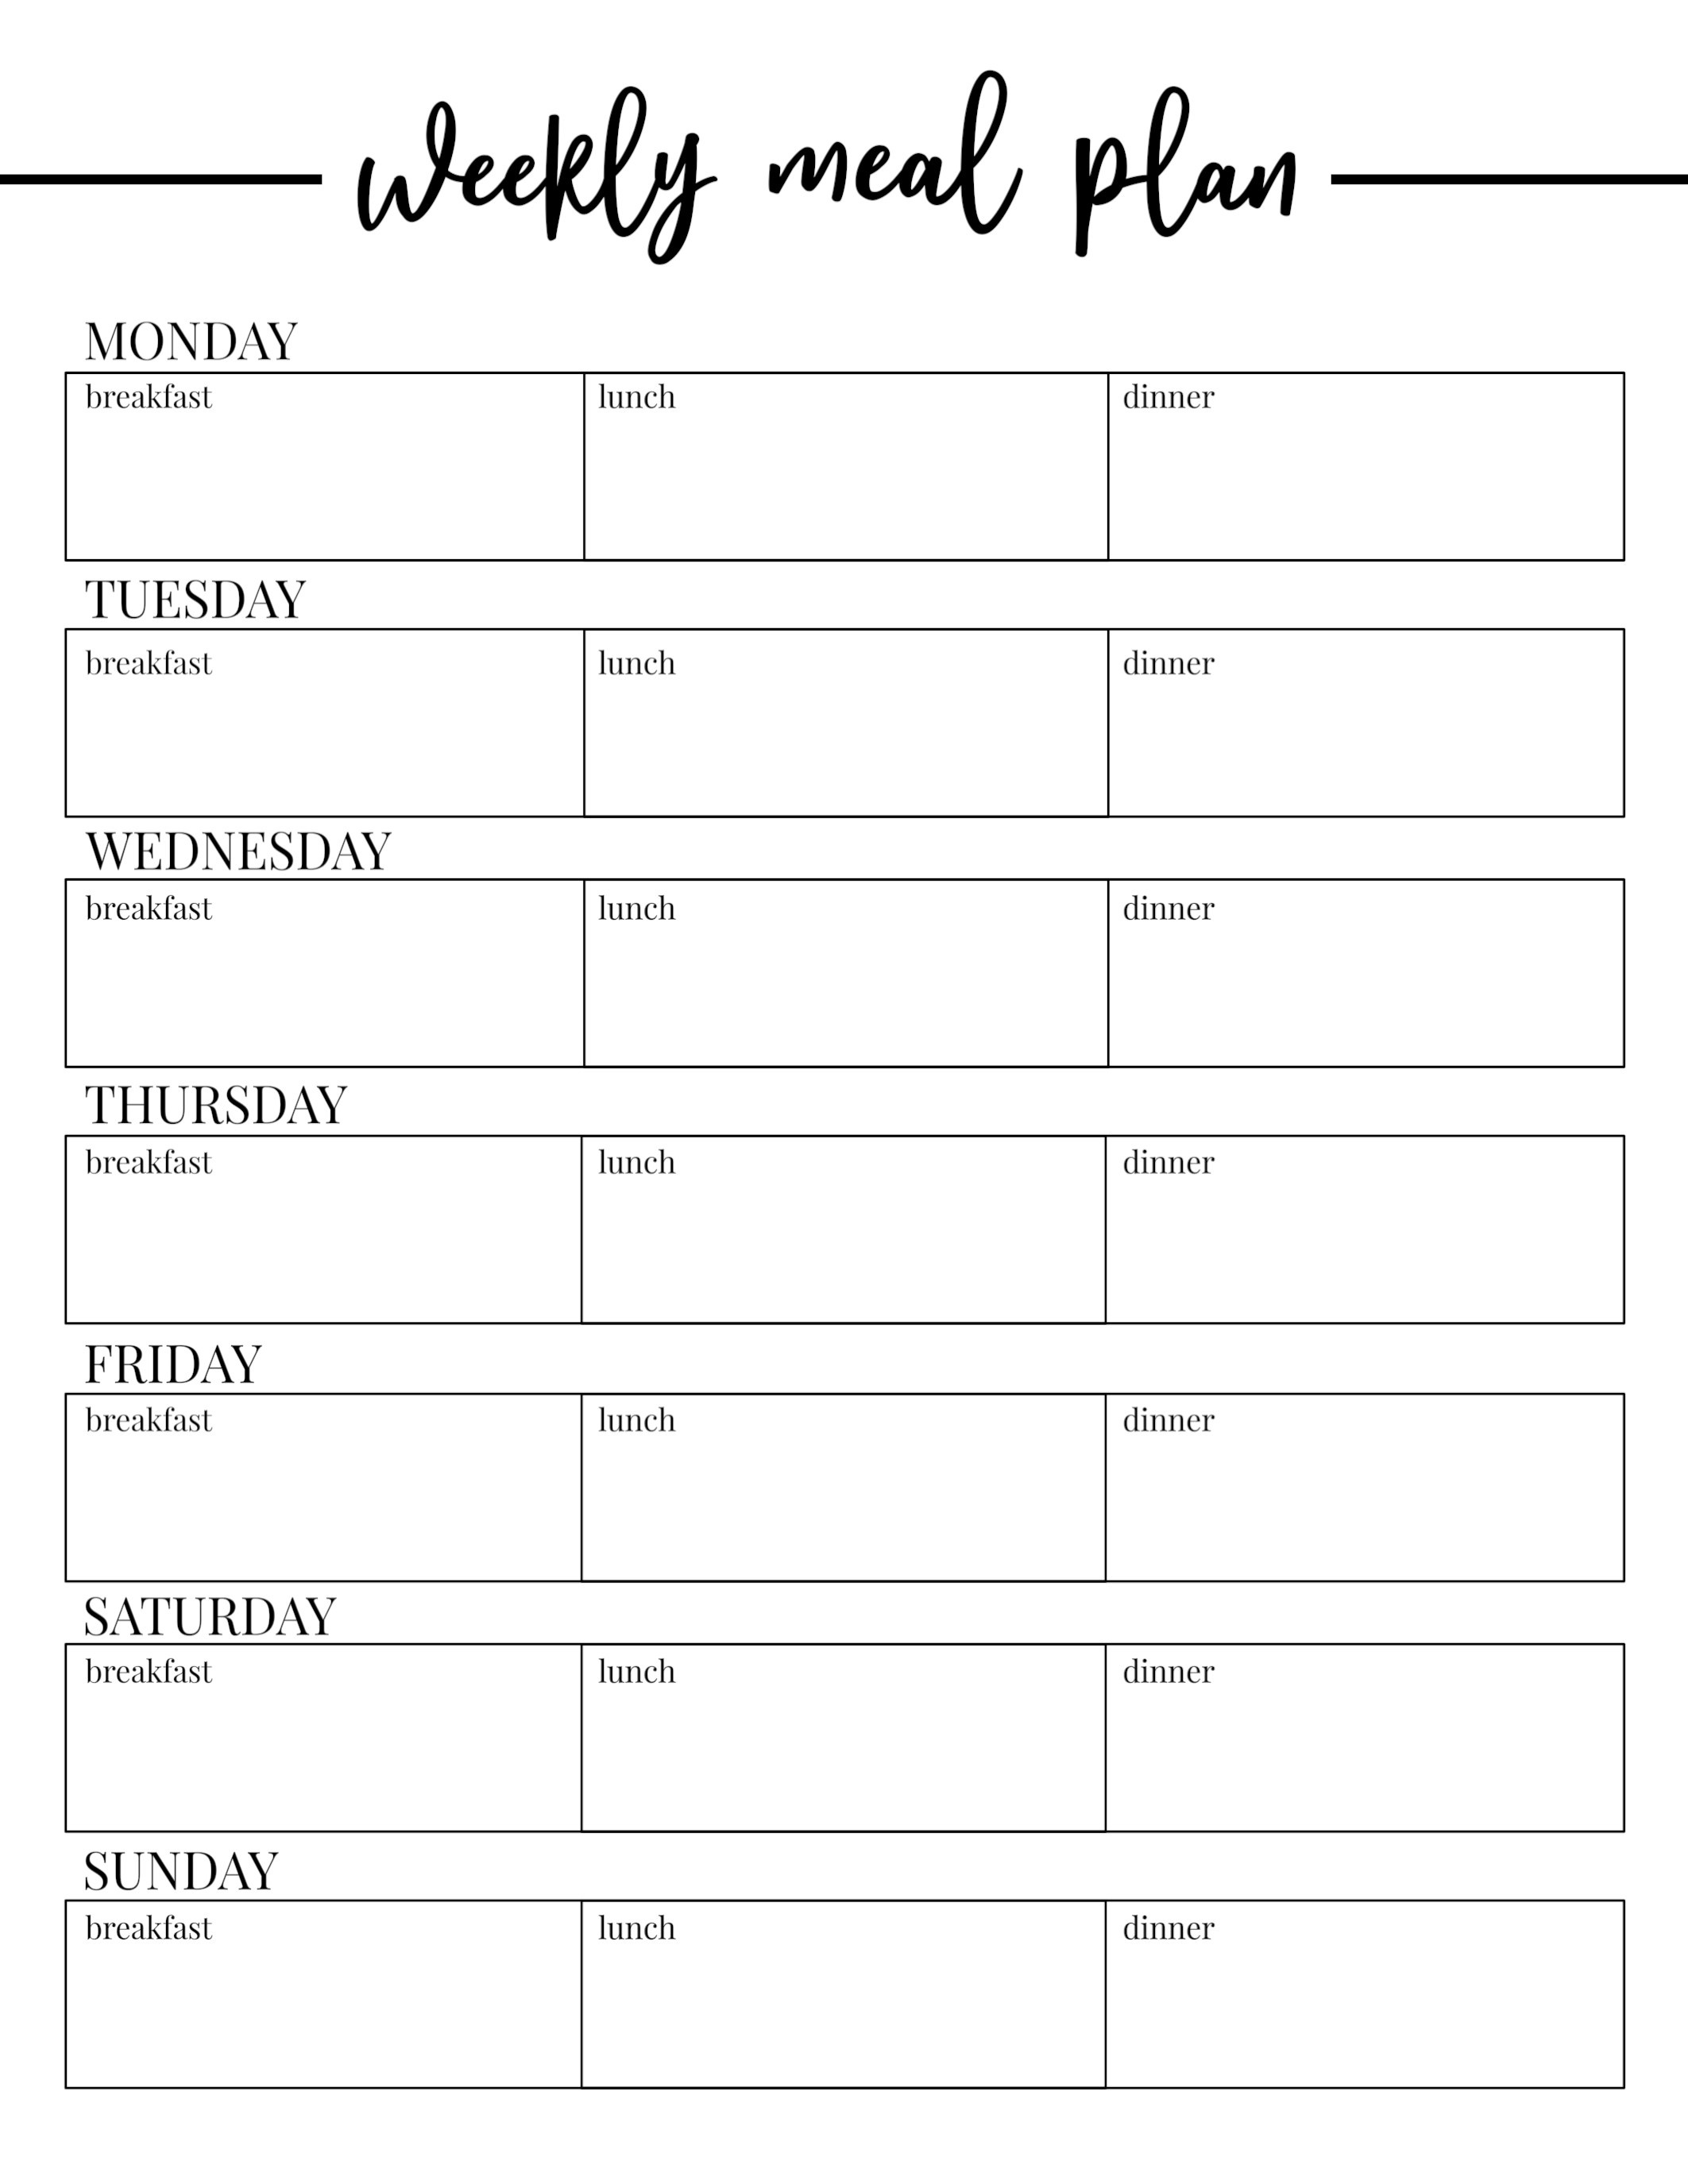 006 Template Ideas Weekly Meal Plan Singular Free Monthly Planning - Free Printable Meal Plans For Weight Loss